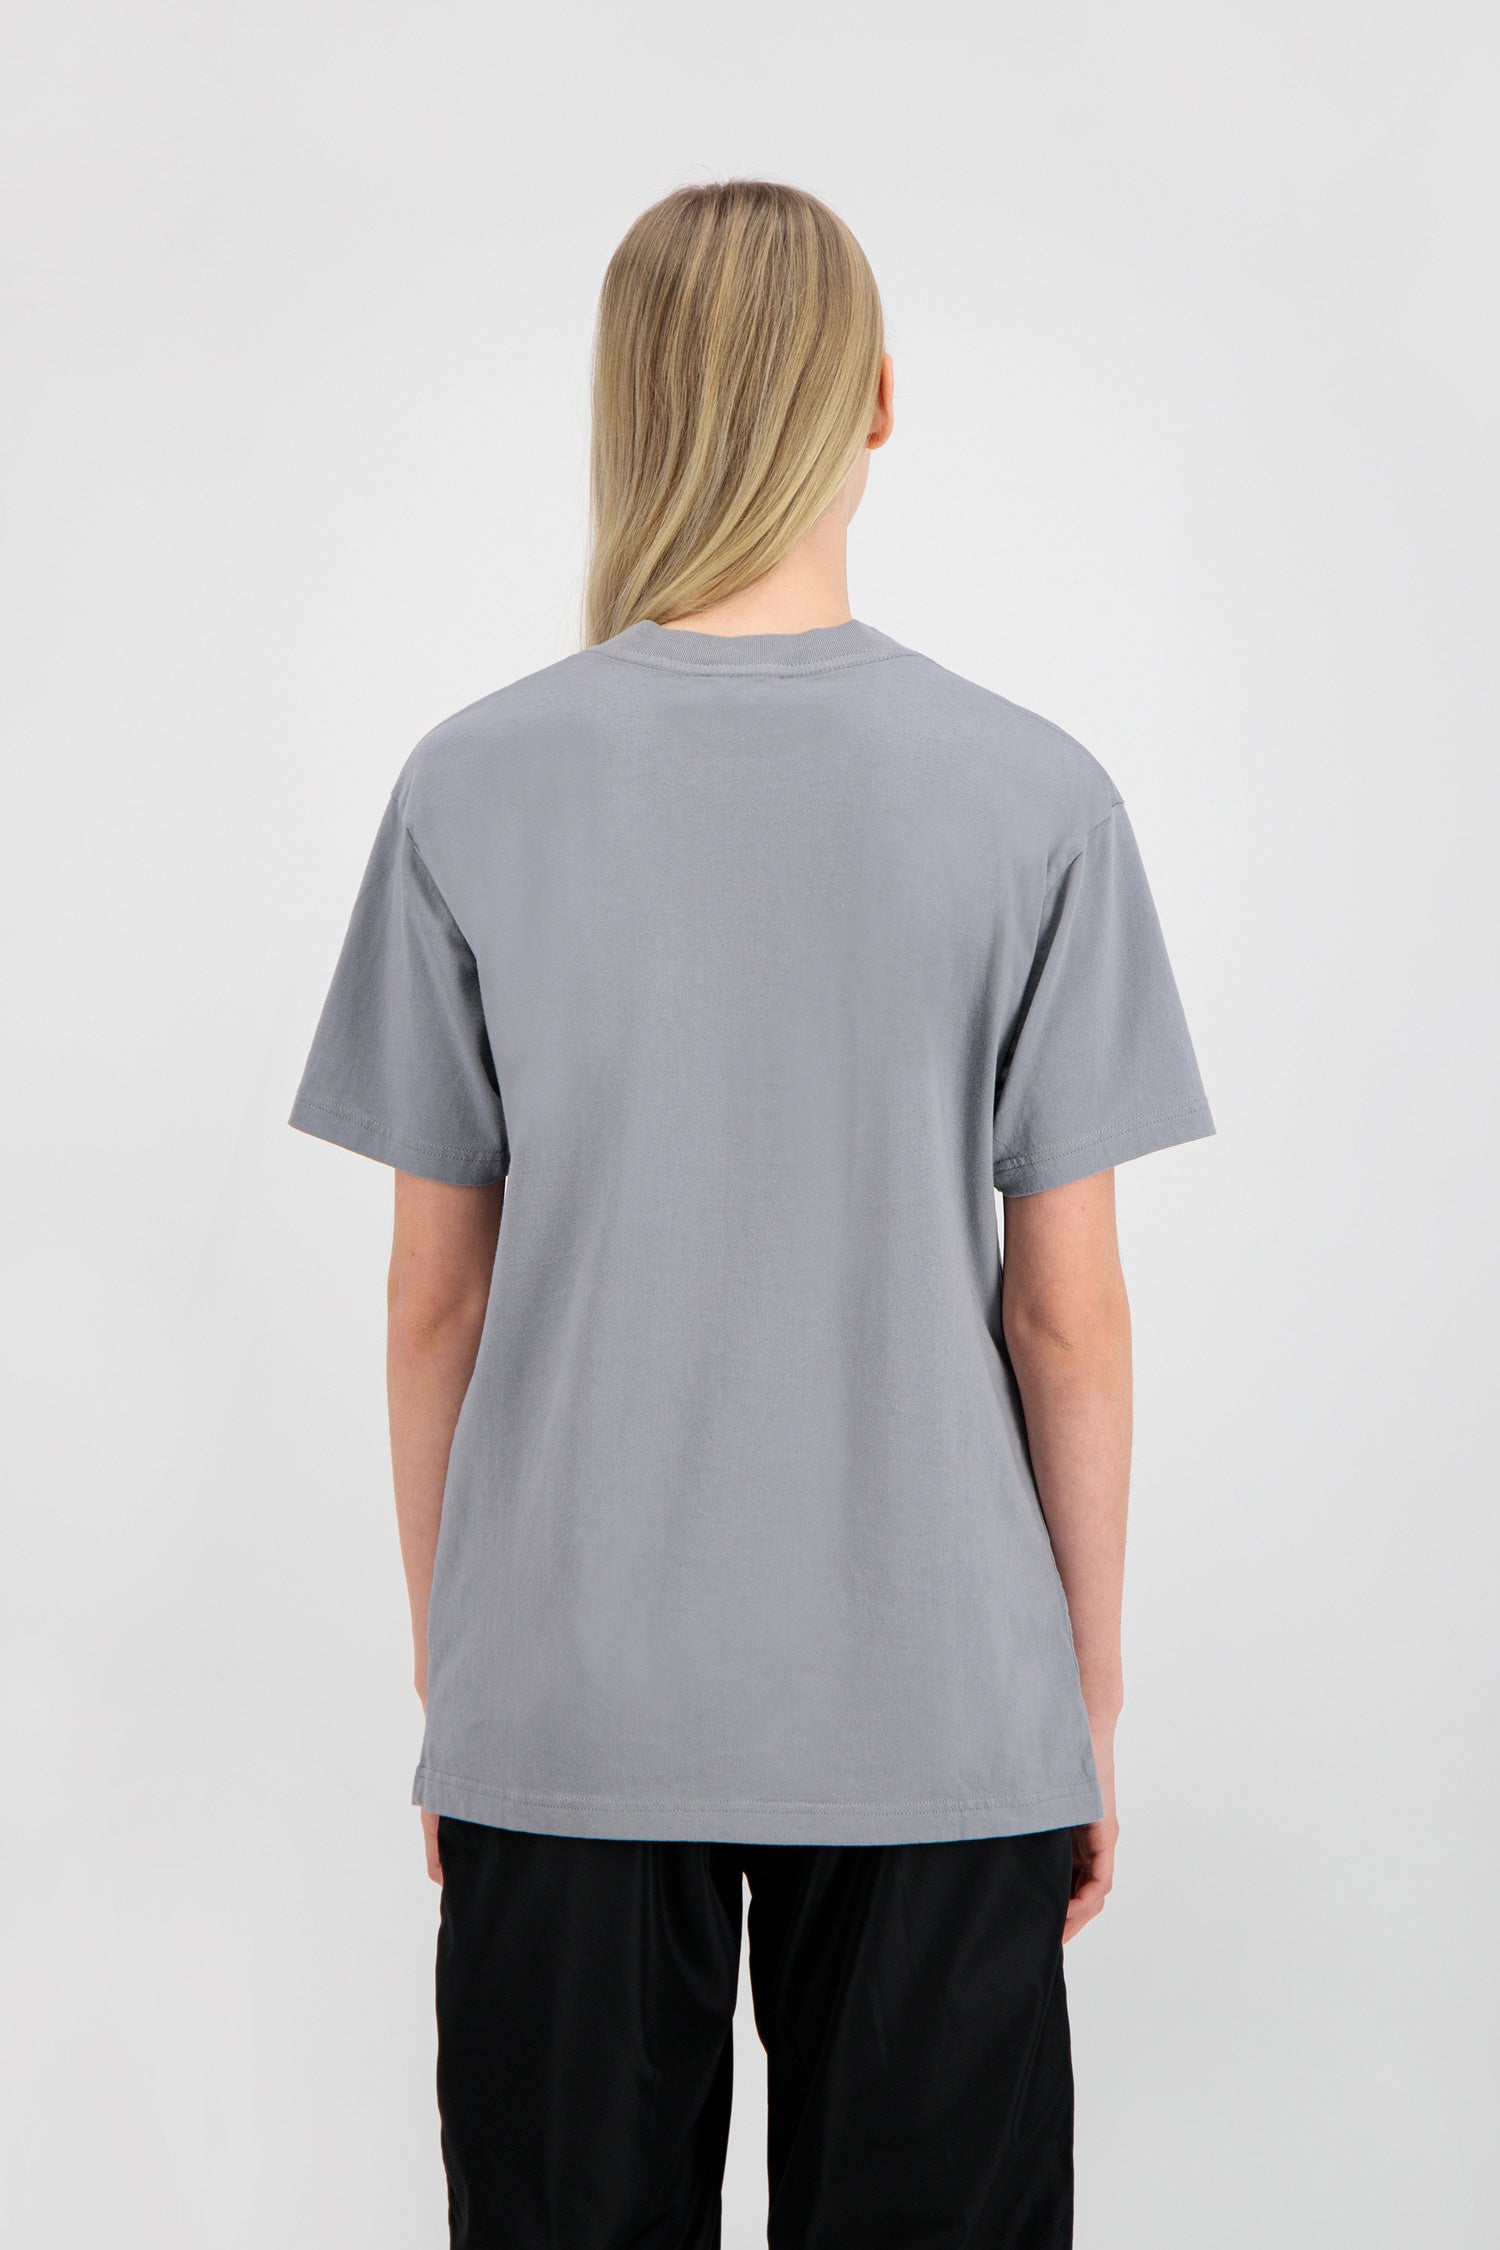 ØLÅF Sunflower Tee <br>Grey